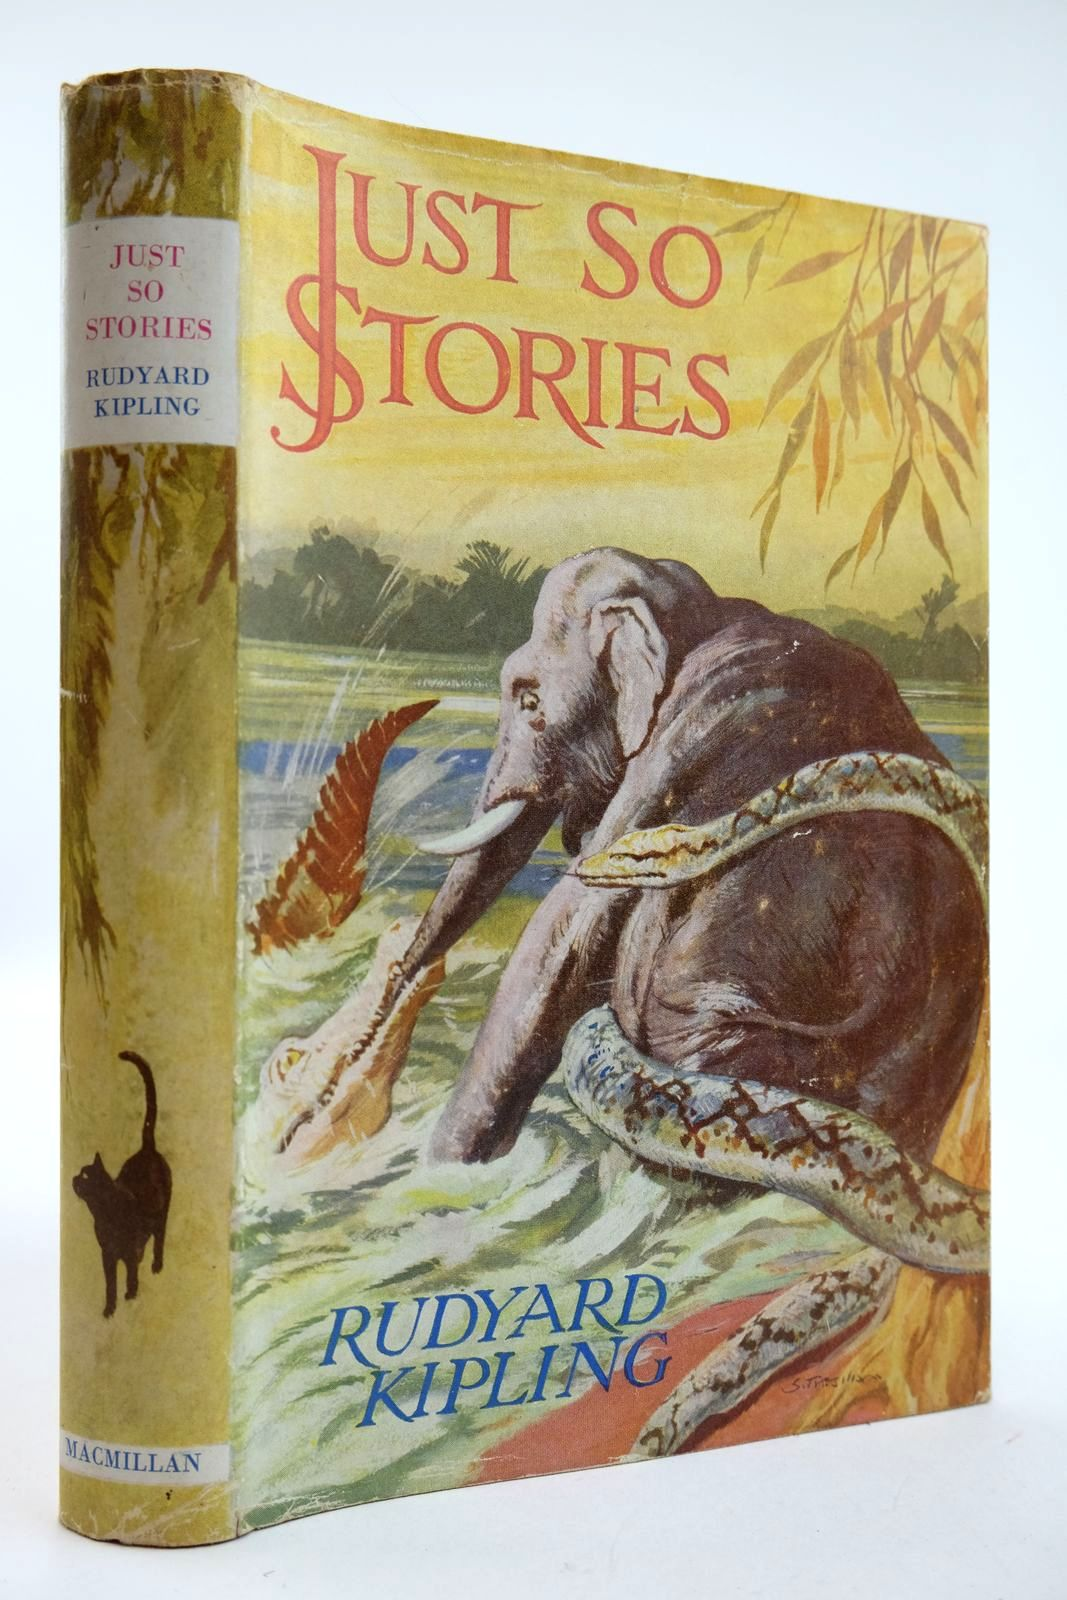 Photo of JUST SO STORIES written by Kipling, Rudyard illustrated by Kipling, Rudyard published by Macmillan & Co. Ltd. (STOCK CODE: 2132416)  for sale by Stella & Rose's Books